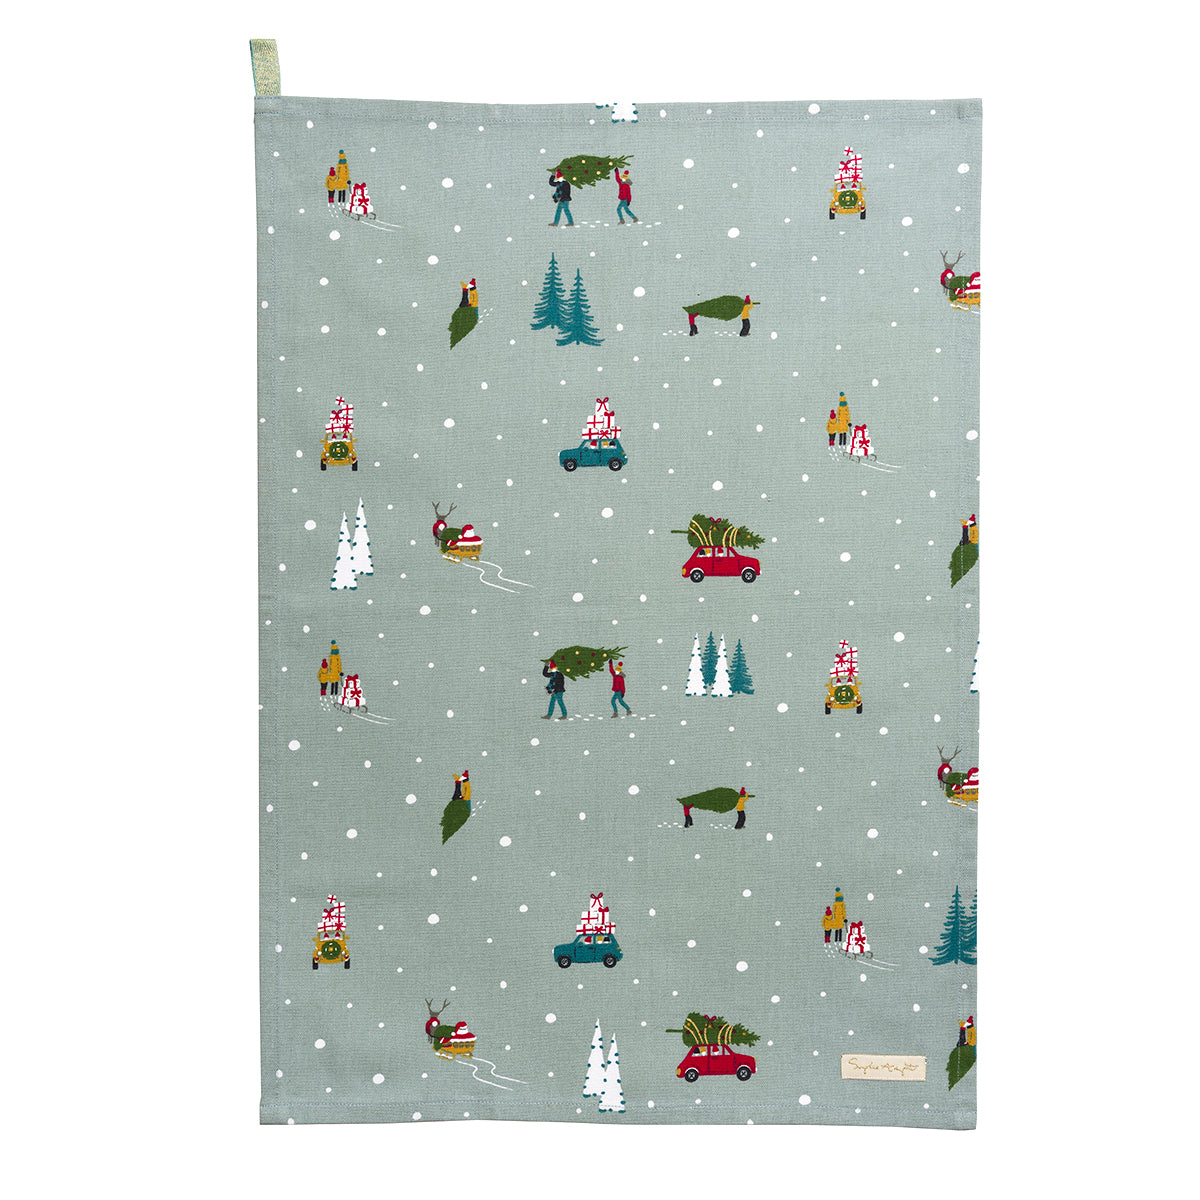 Home for Christmas Tea Towel